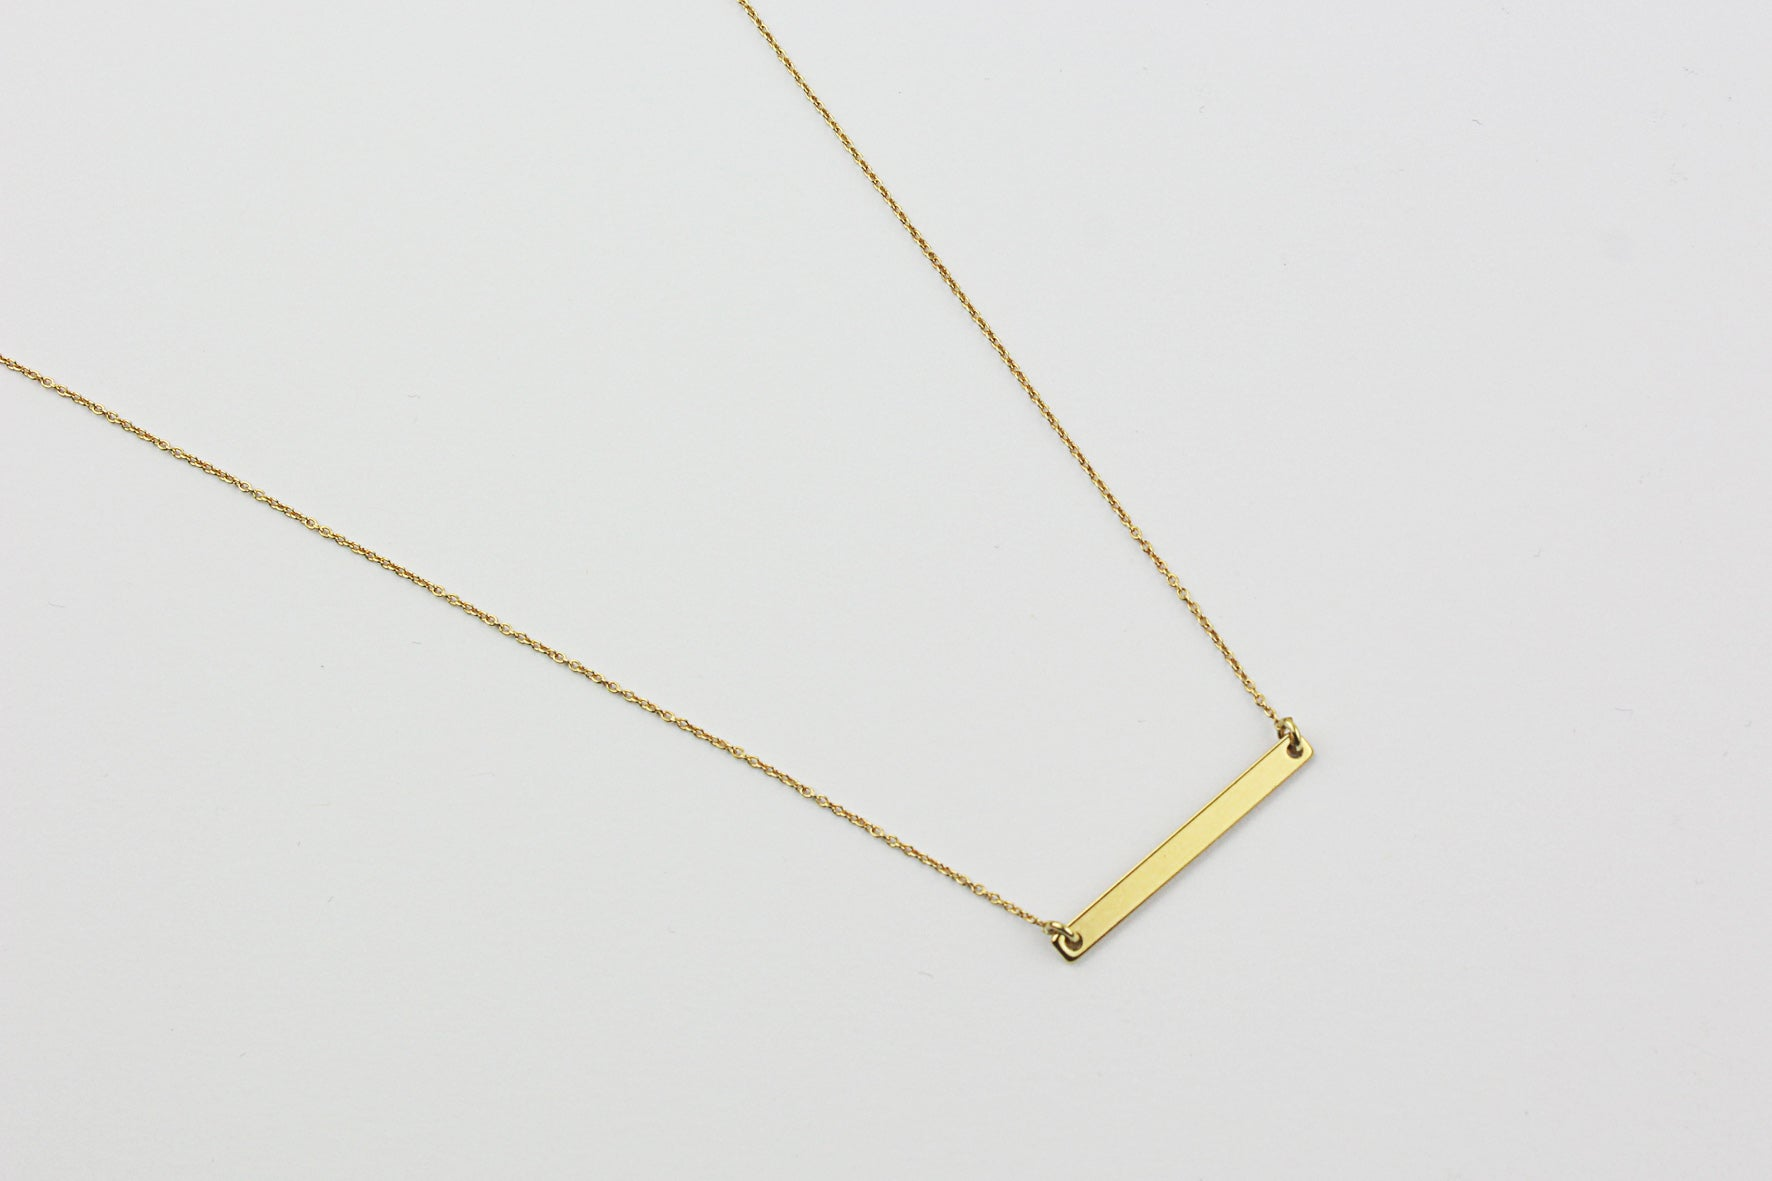 ....Kette MEDIUM BAR FRAMED Sterling Silber vergoldet..Necklace MEDIUM BAR FRAMED Sterling Silver gold plated....